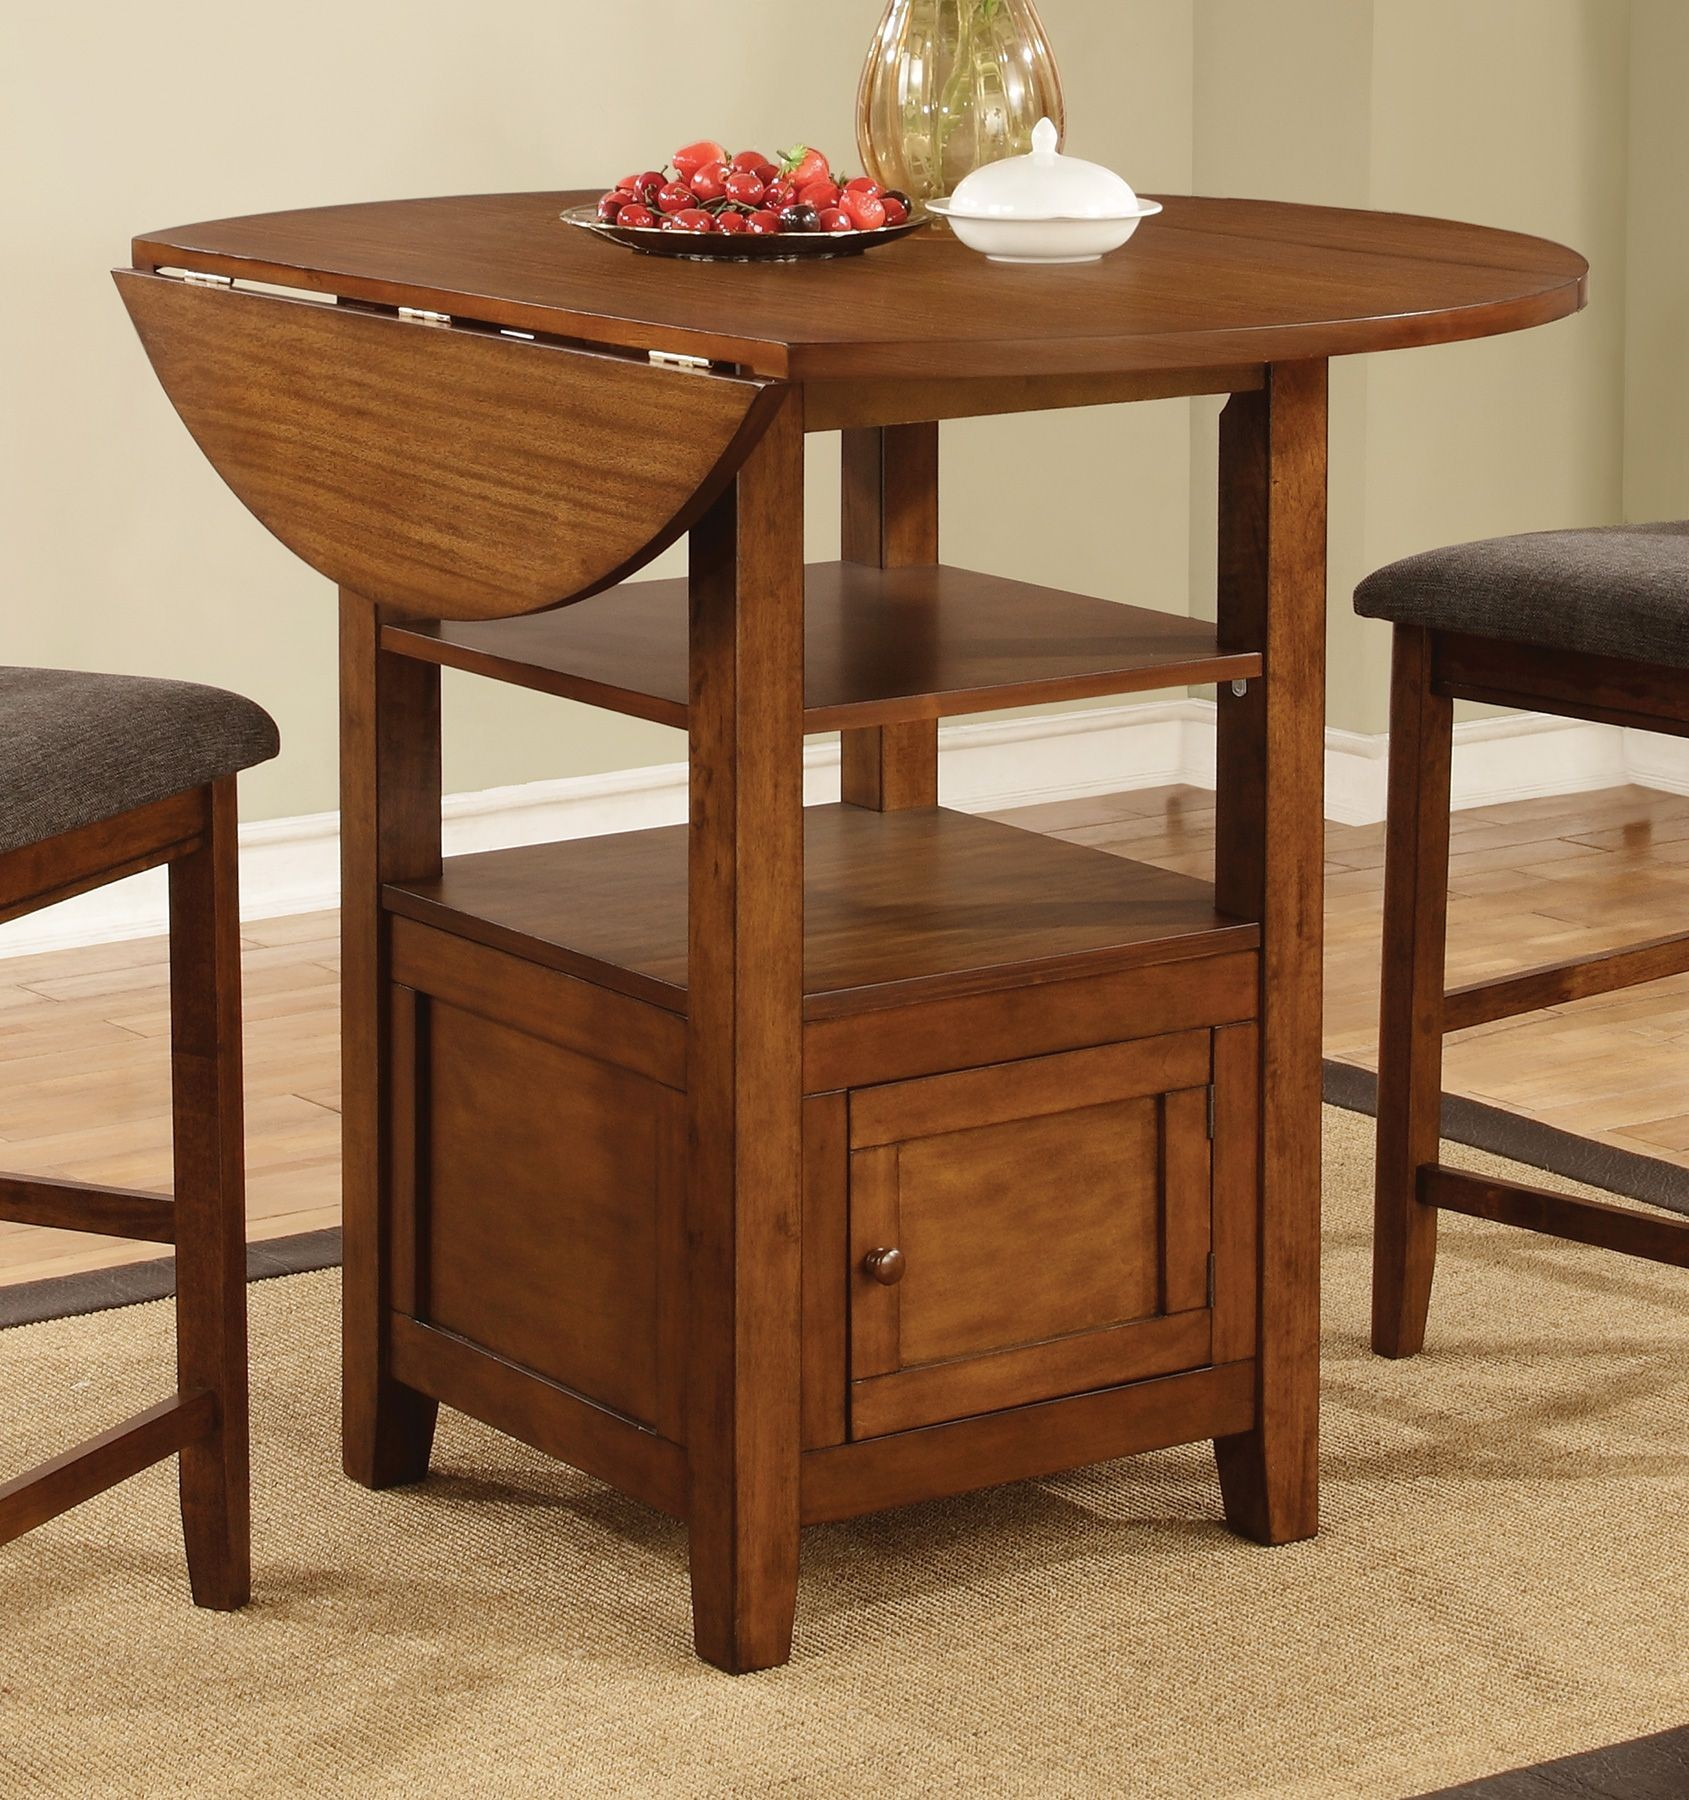 Tall Breakfast Table: Stockton Warm Brown Drop Leaf Round Counter Height Dining